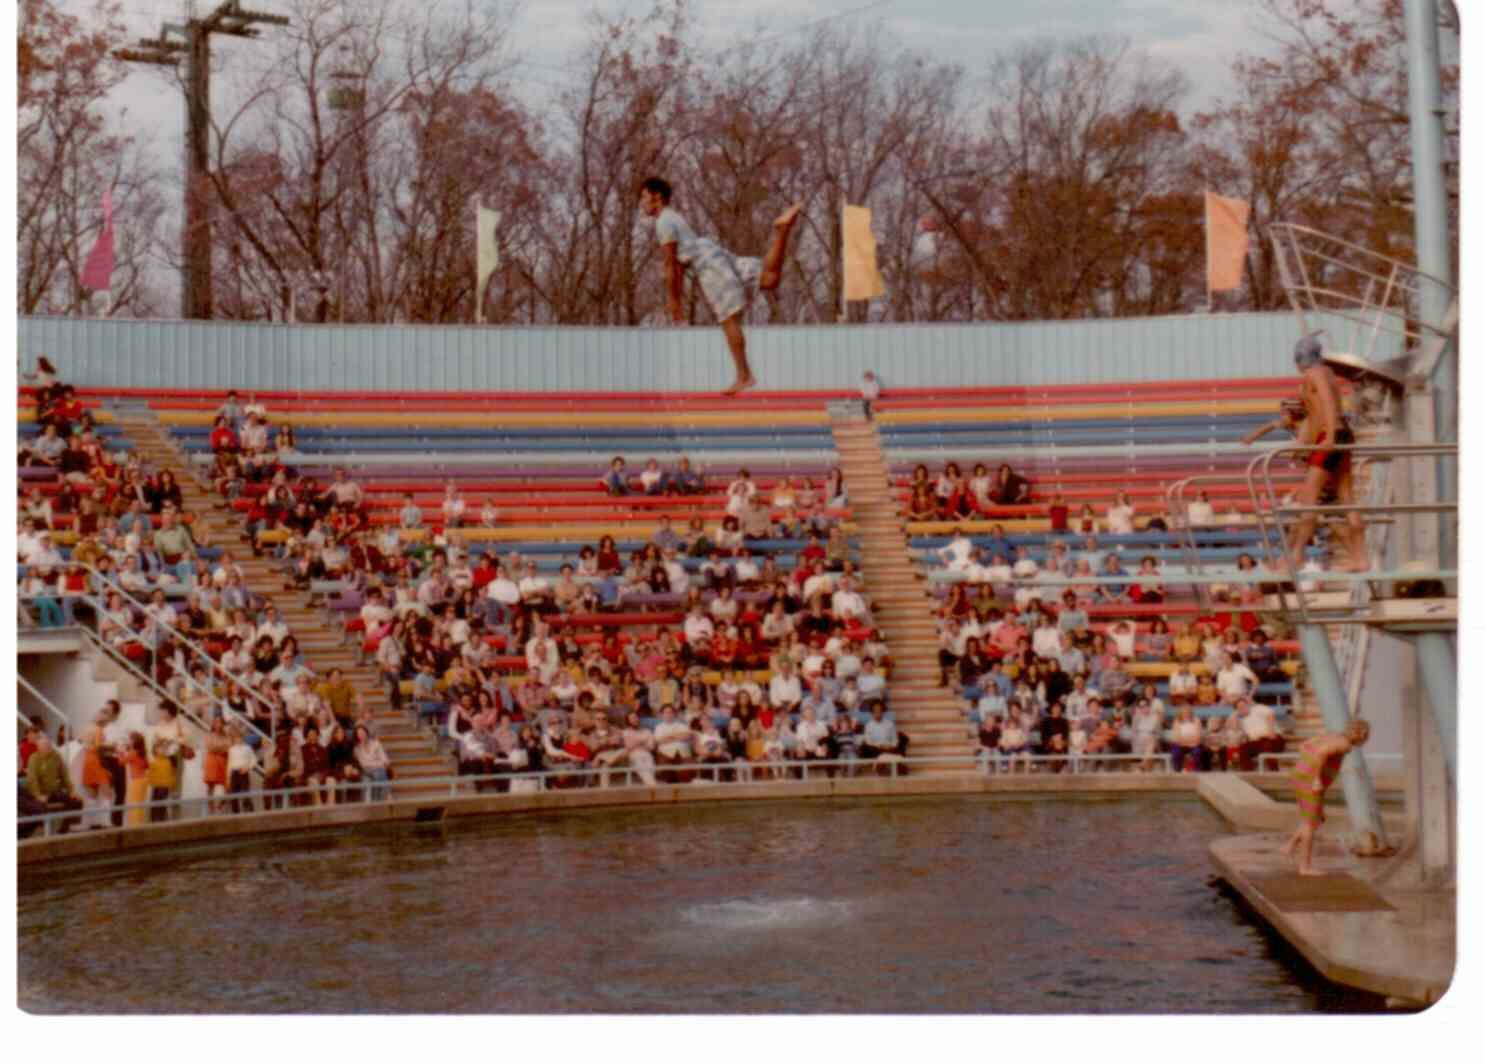 from the 1974 Aqua Spectacular